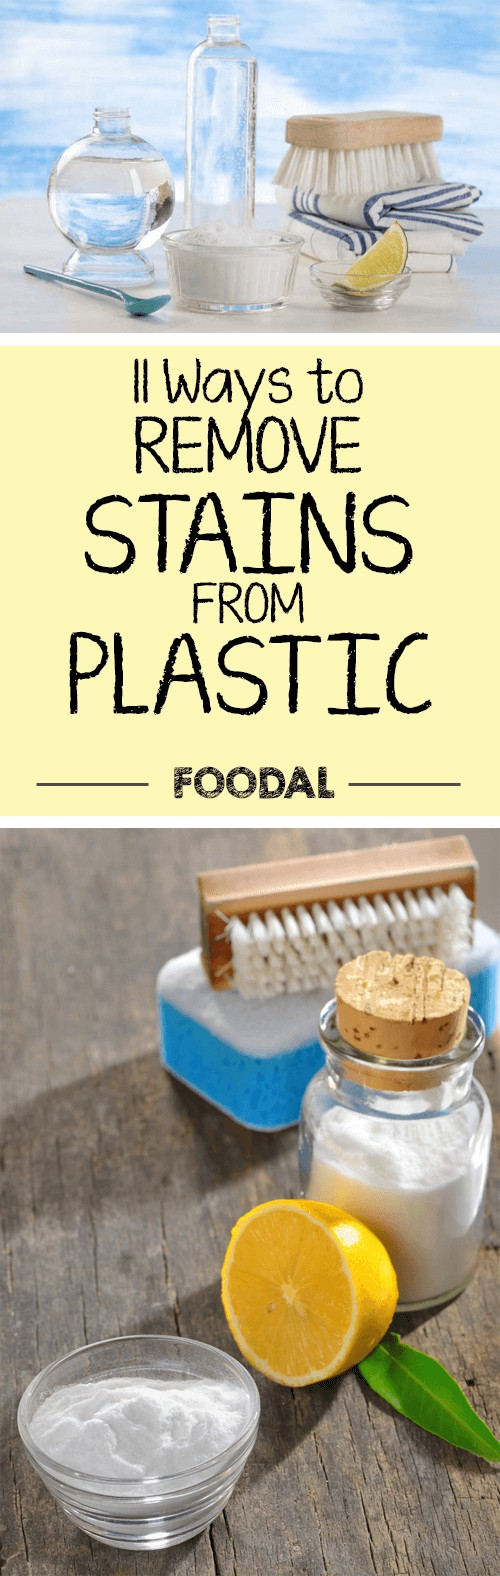 Plastic containers, cutting boards, cups, and utensils are found throughout the modern kitchen. But these things stain very easily. Find out how to make them sparkly clean now. https://foodal.com/knowledge/cleaning/11-ways-remove-stains-plastic/